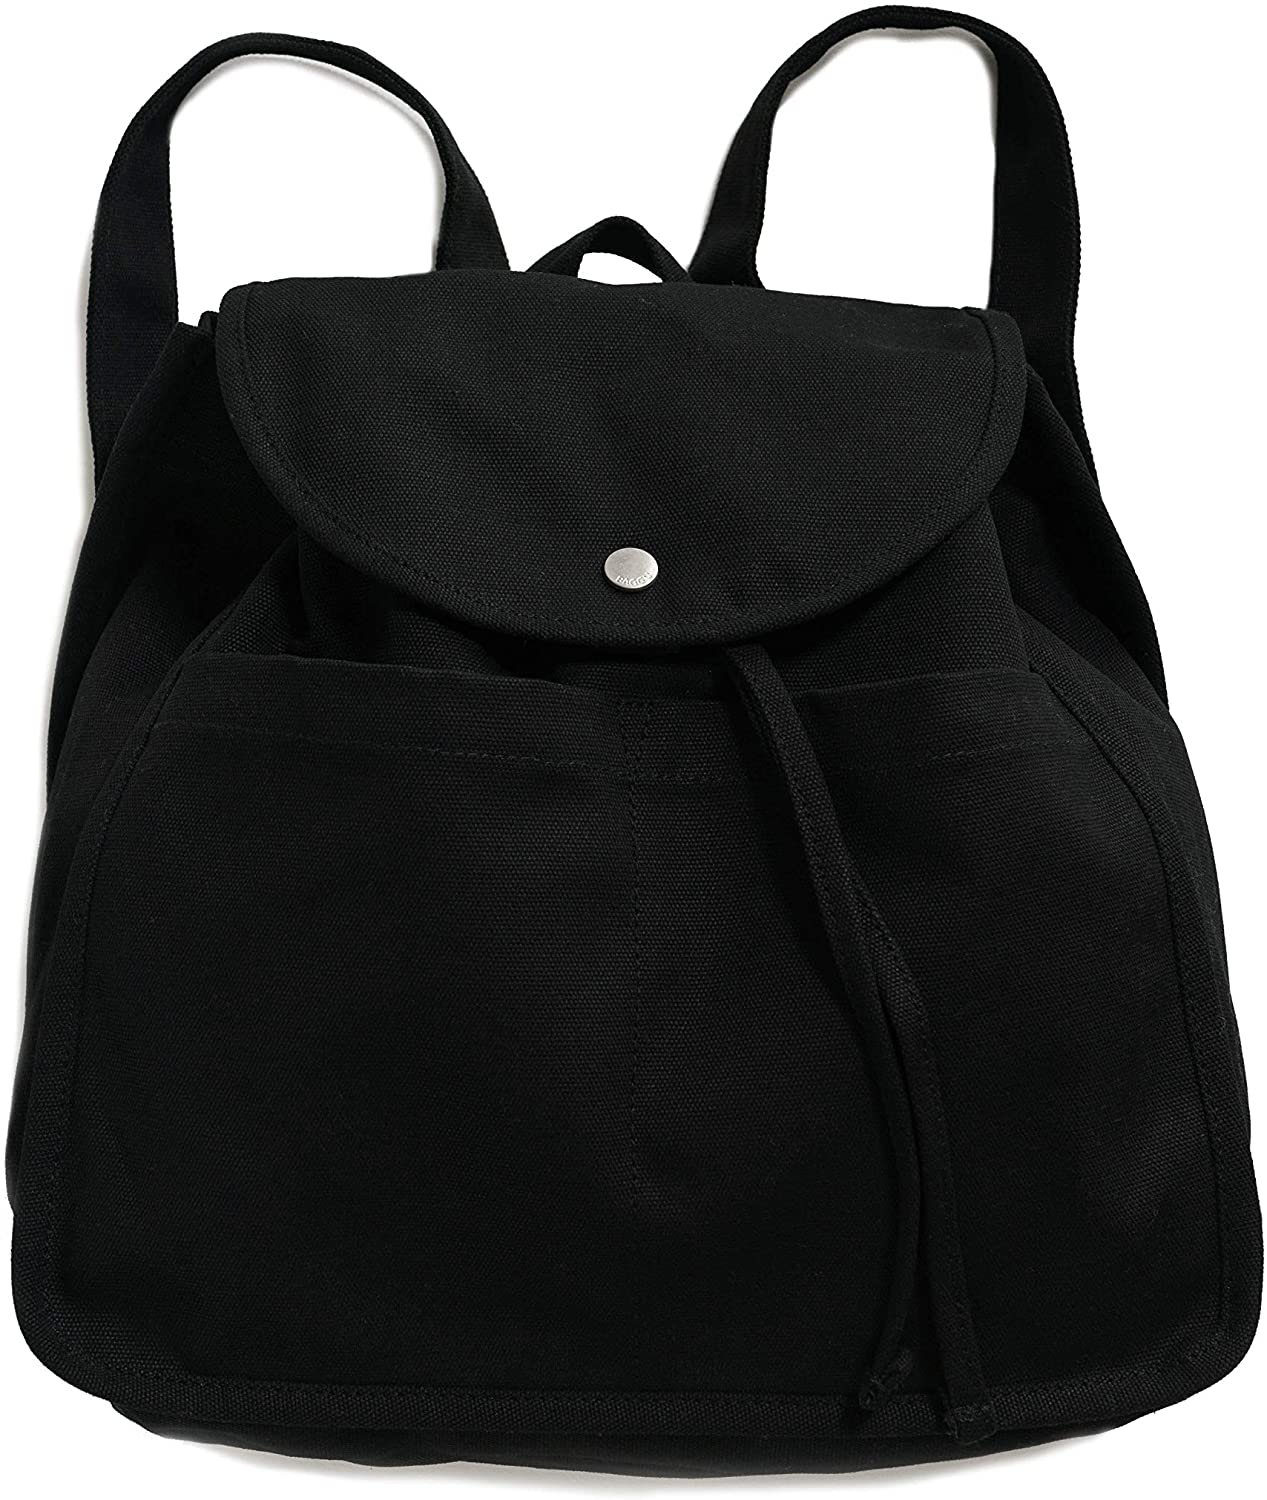 BAGGU Drawstring Backpack, Durable and Stylish for Daily Essentials